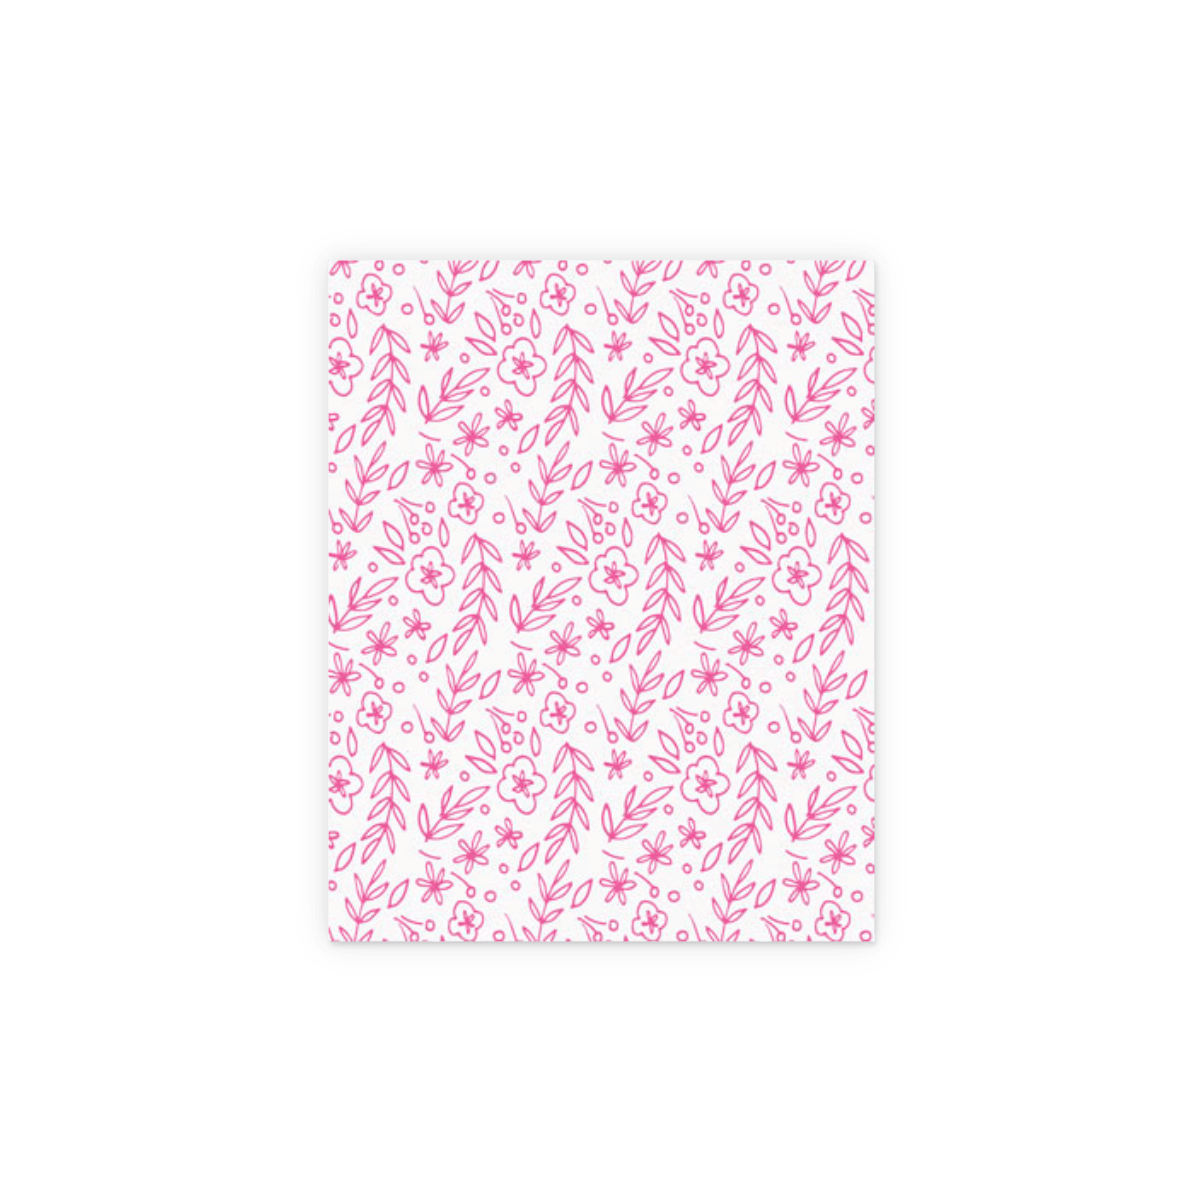 Https%3a%2f%2fwww.papier.com%2fproduct image%2f21956%2f9%2ffuchsia blooms 5535 insert back 1493033626.png?ixlib=rb 1.1